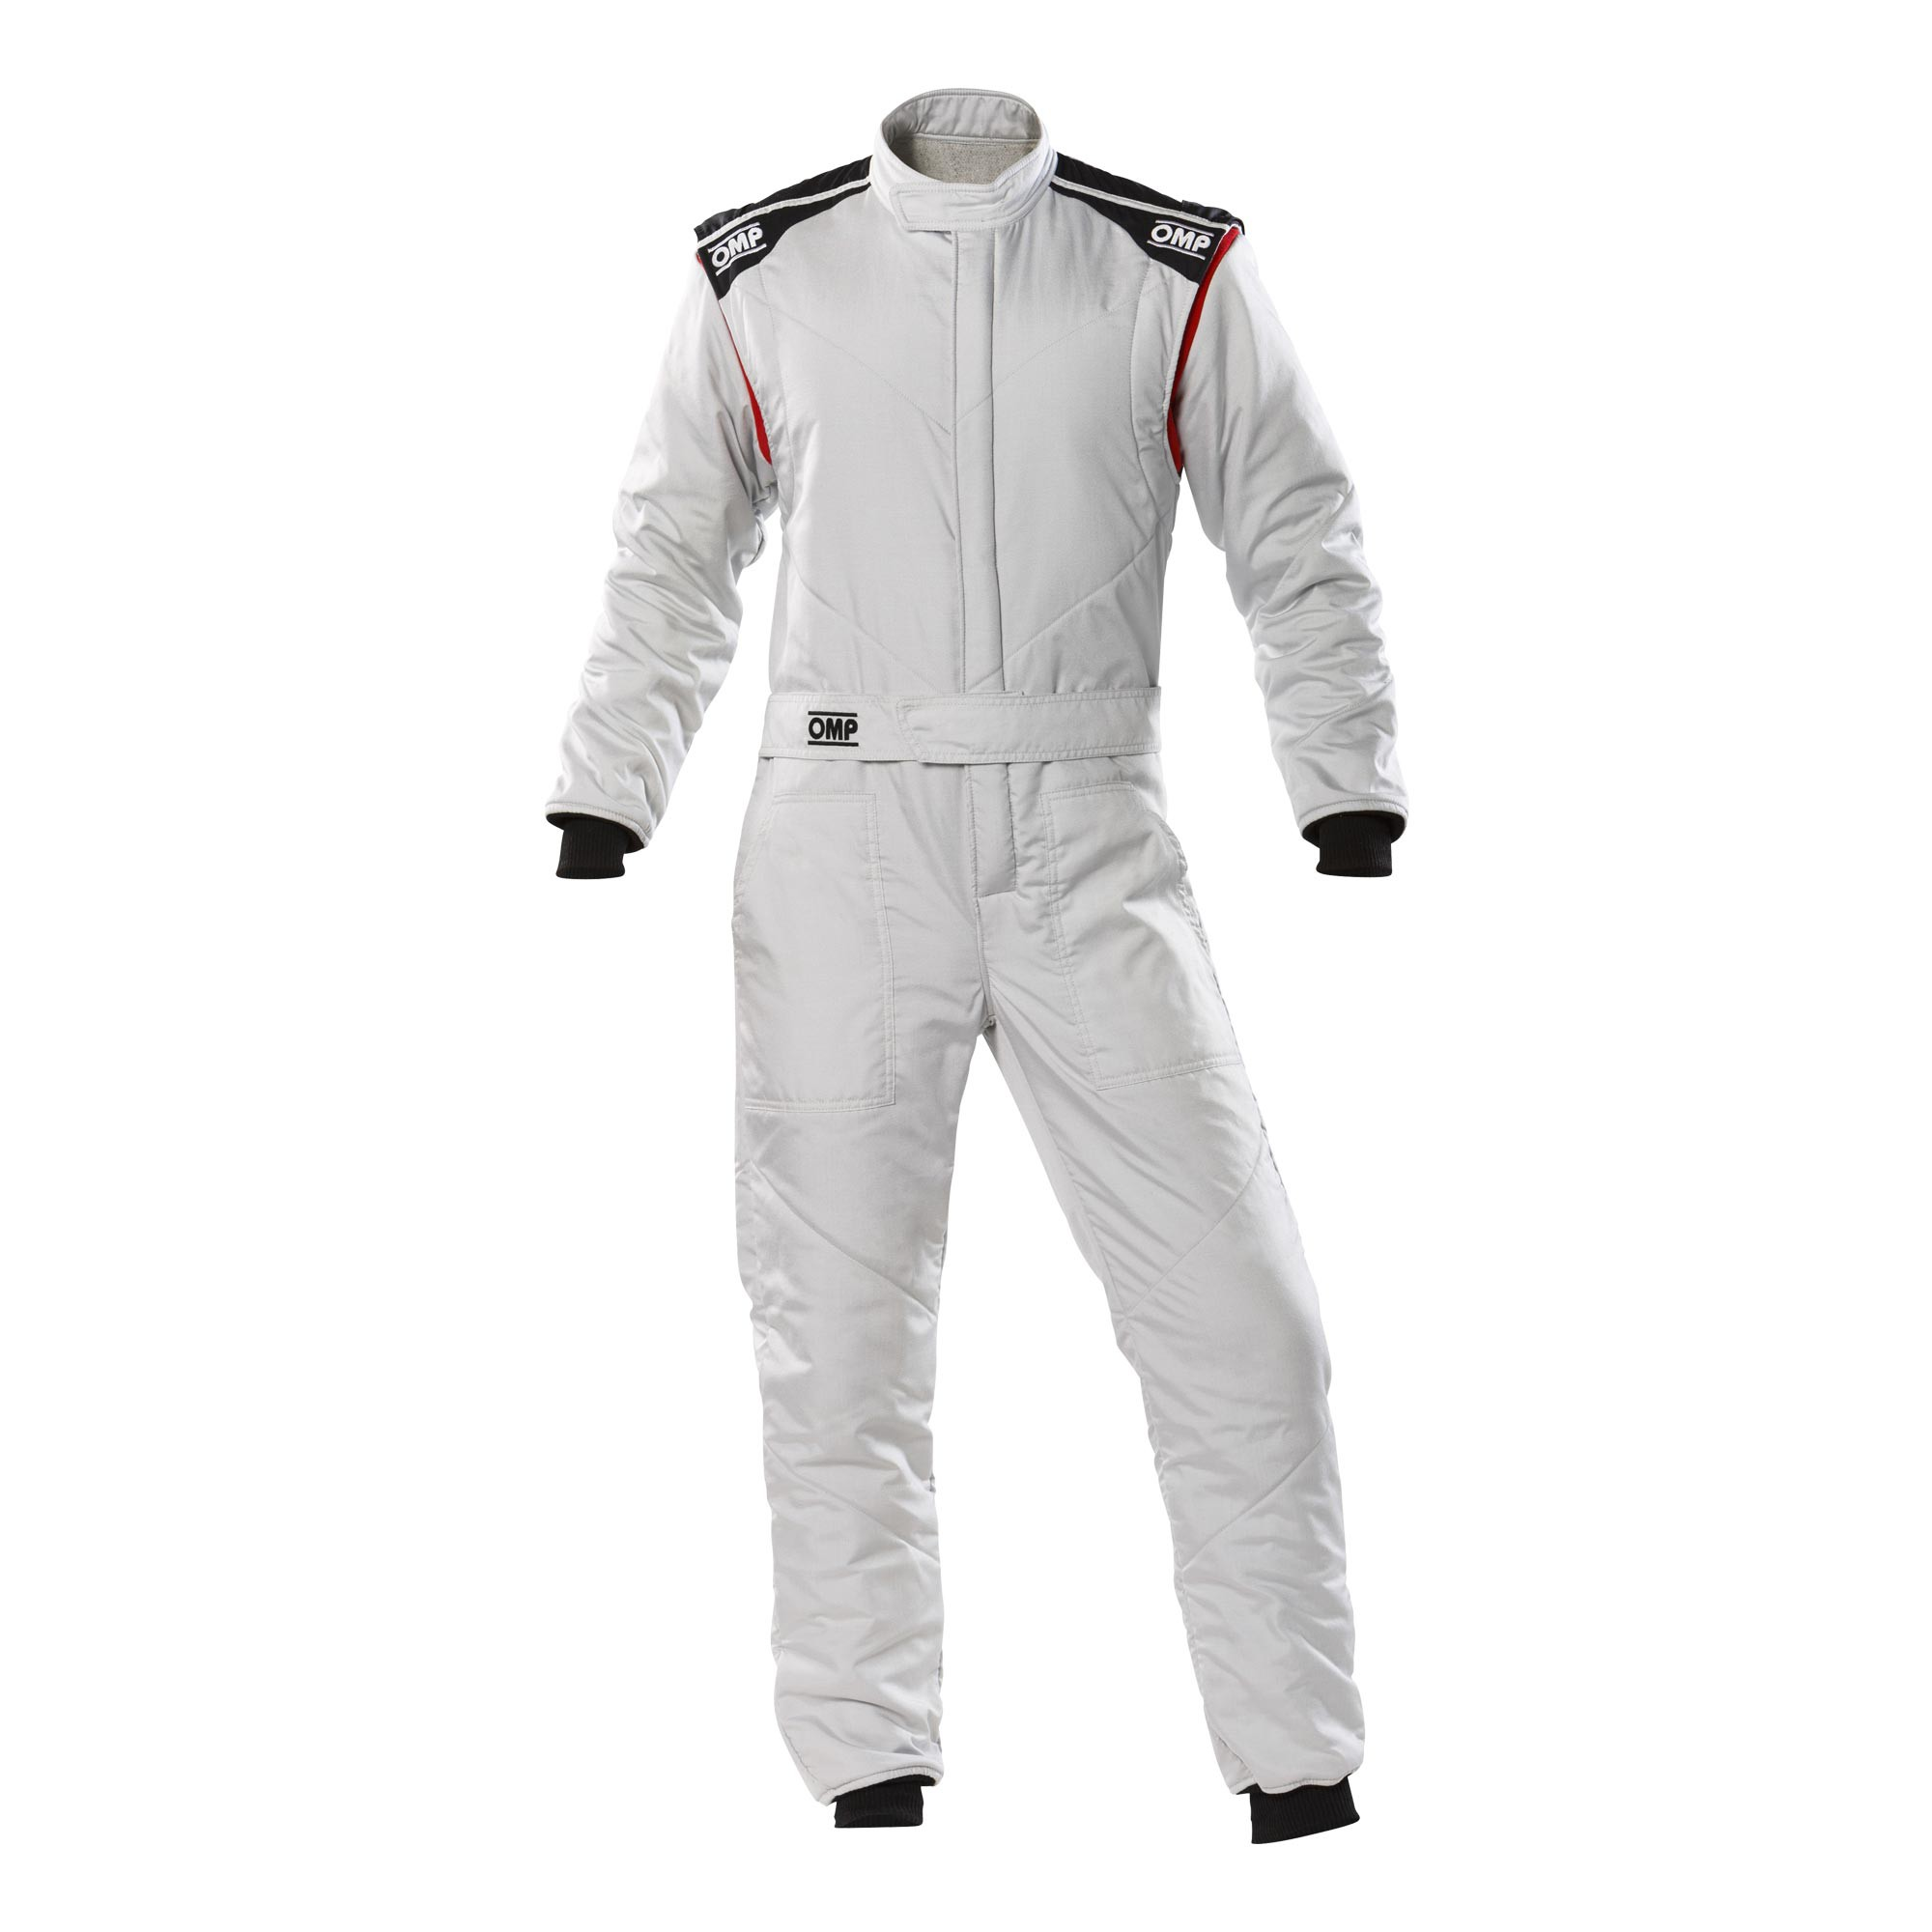 FIRST-S OVERALL SILVER SIZE 44 FIA 8856-2018